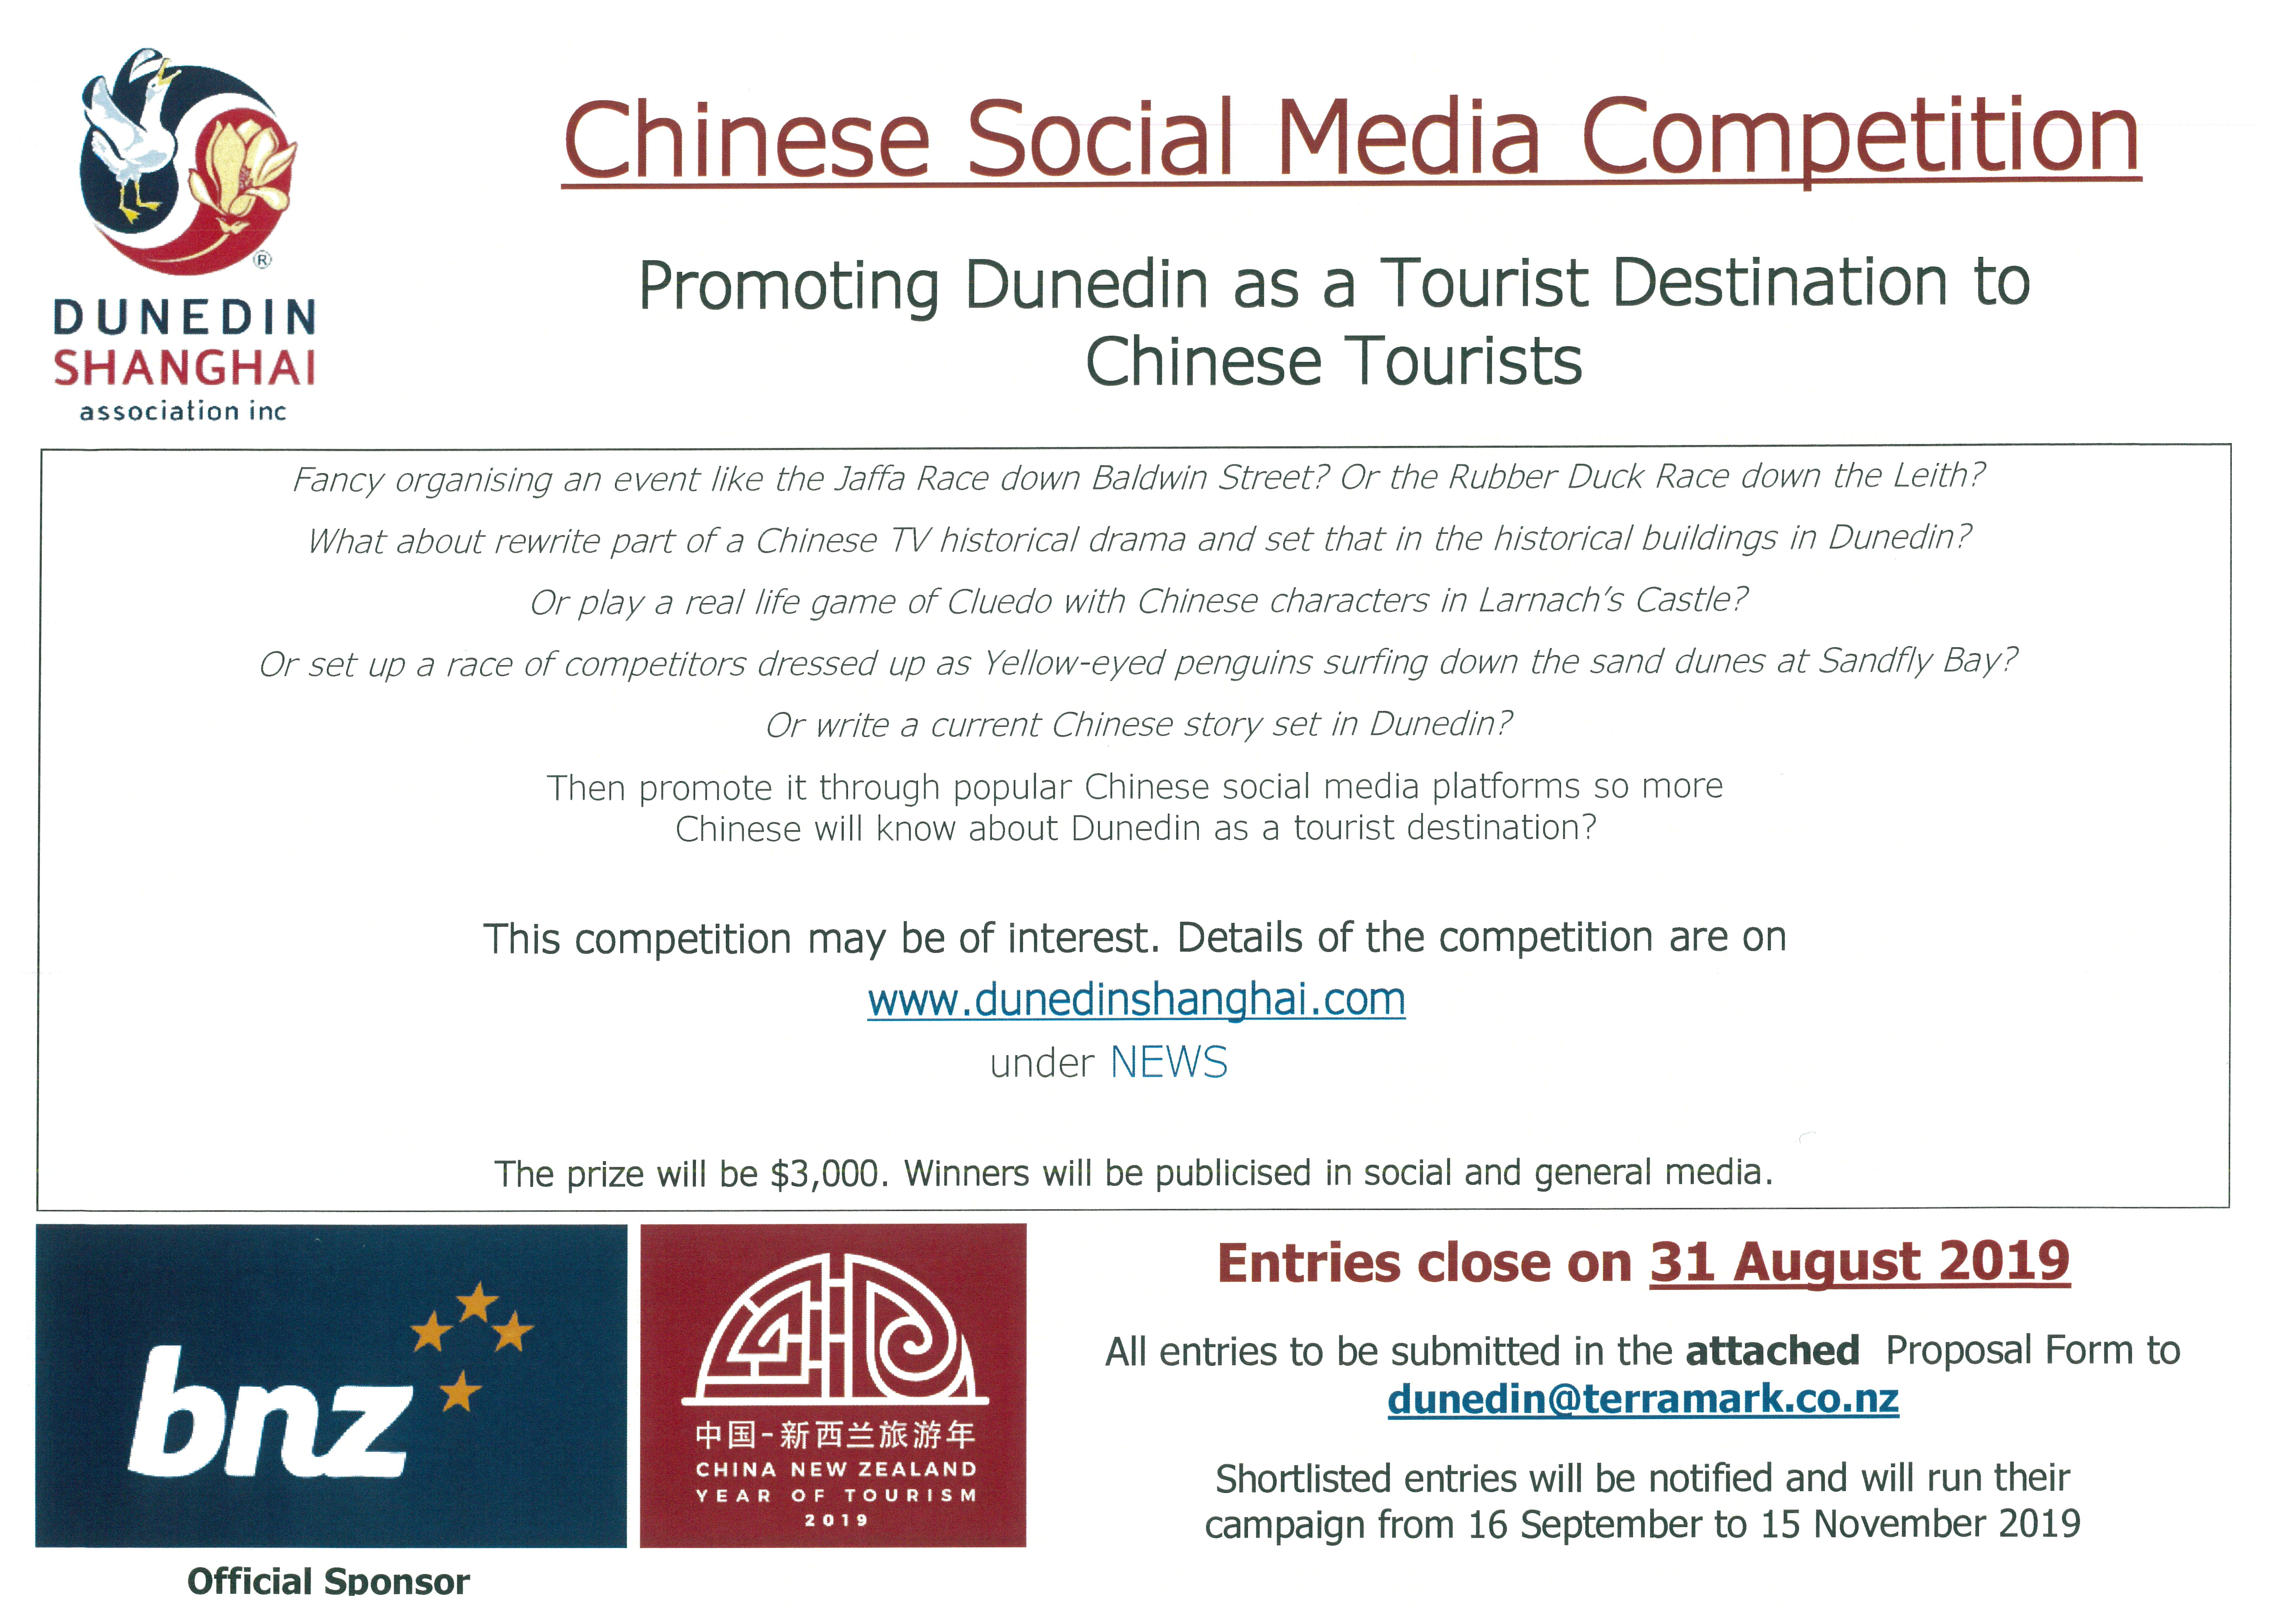 Promoting Dunedin as a Tourist Destination to Chinese Tourists